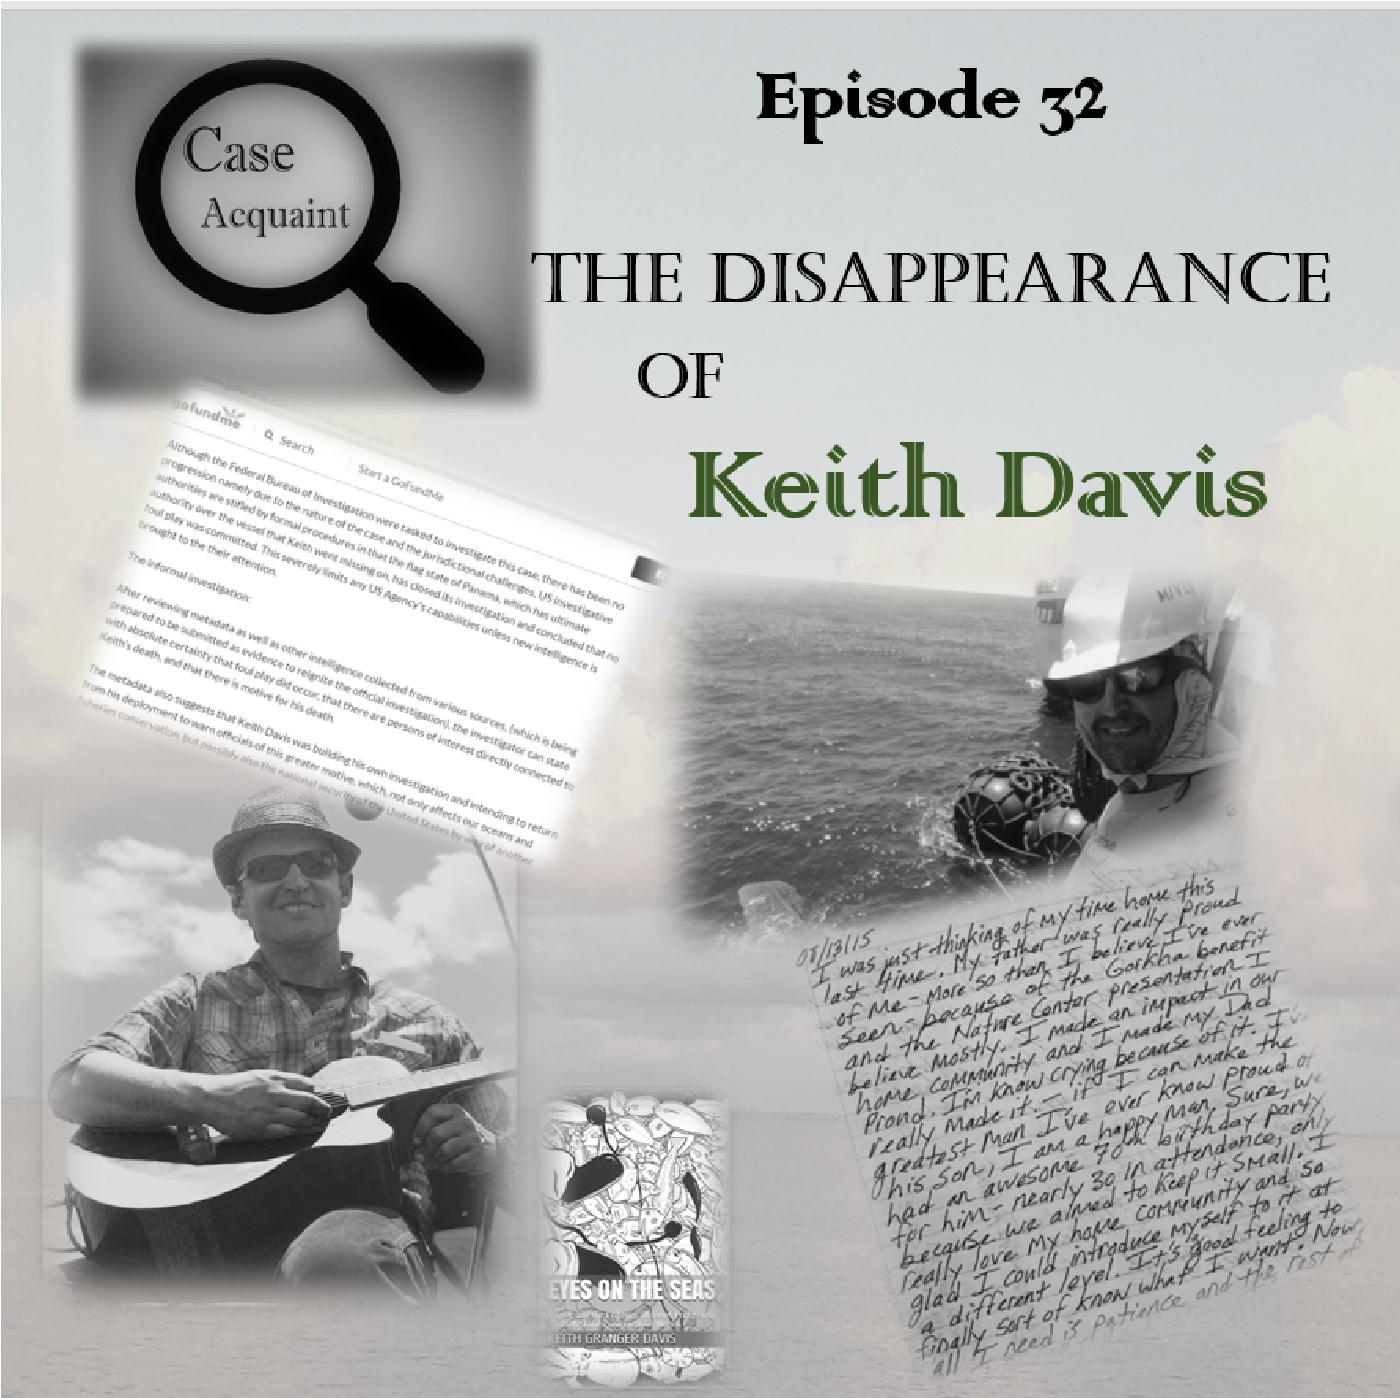 Episode 32 The Disappearance of Keith Davis